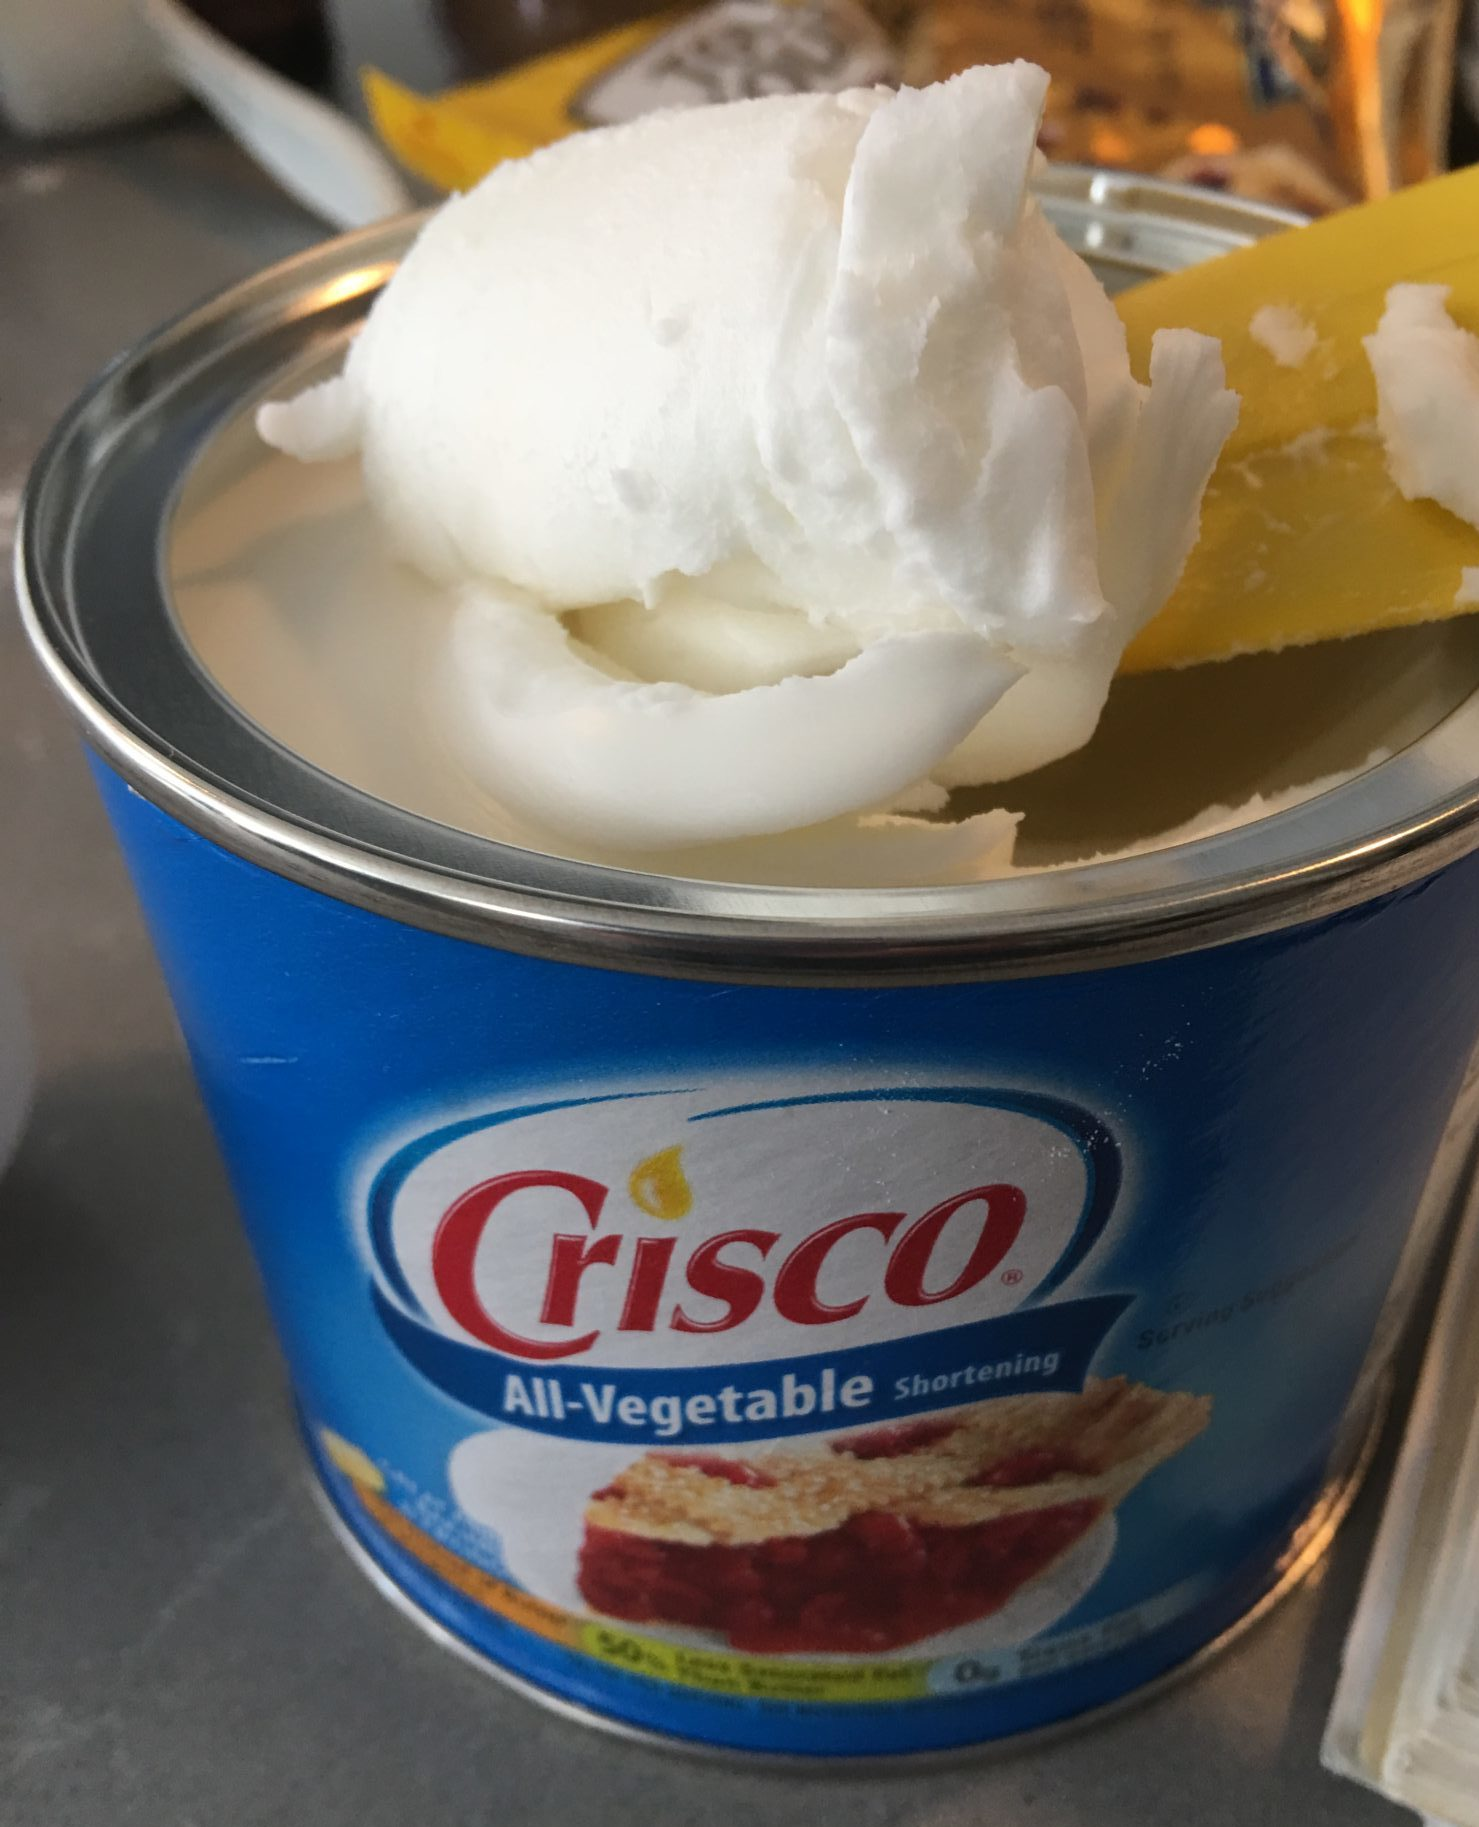 Crisco brand shortening